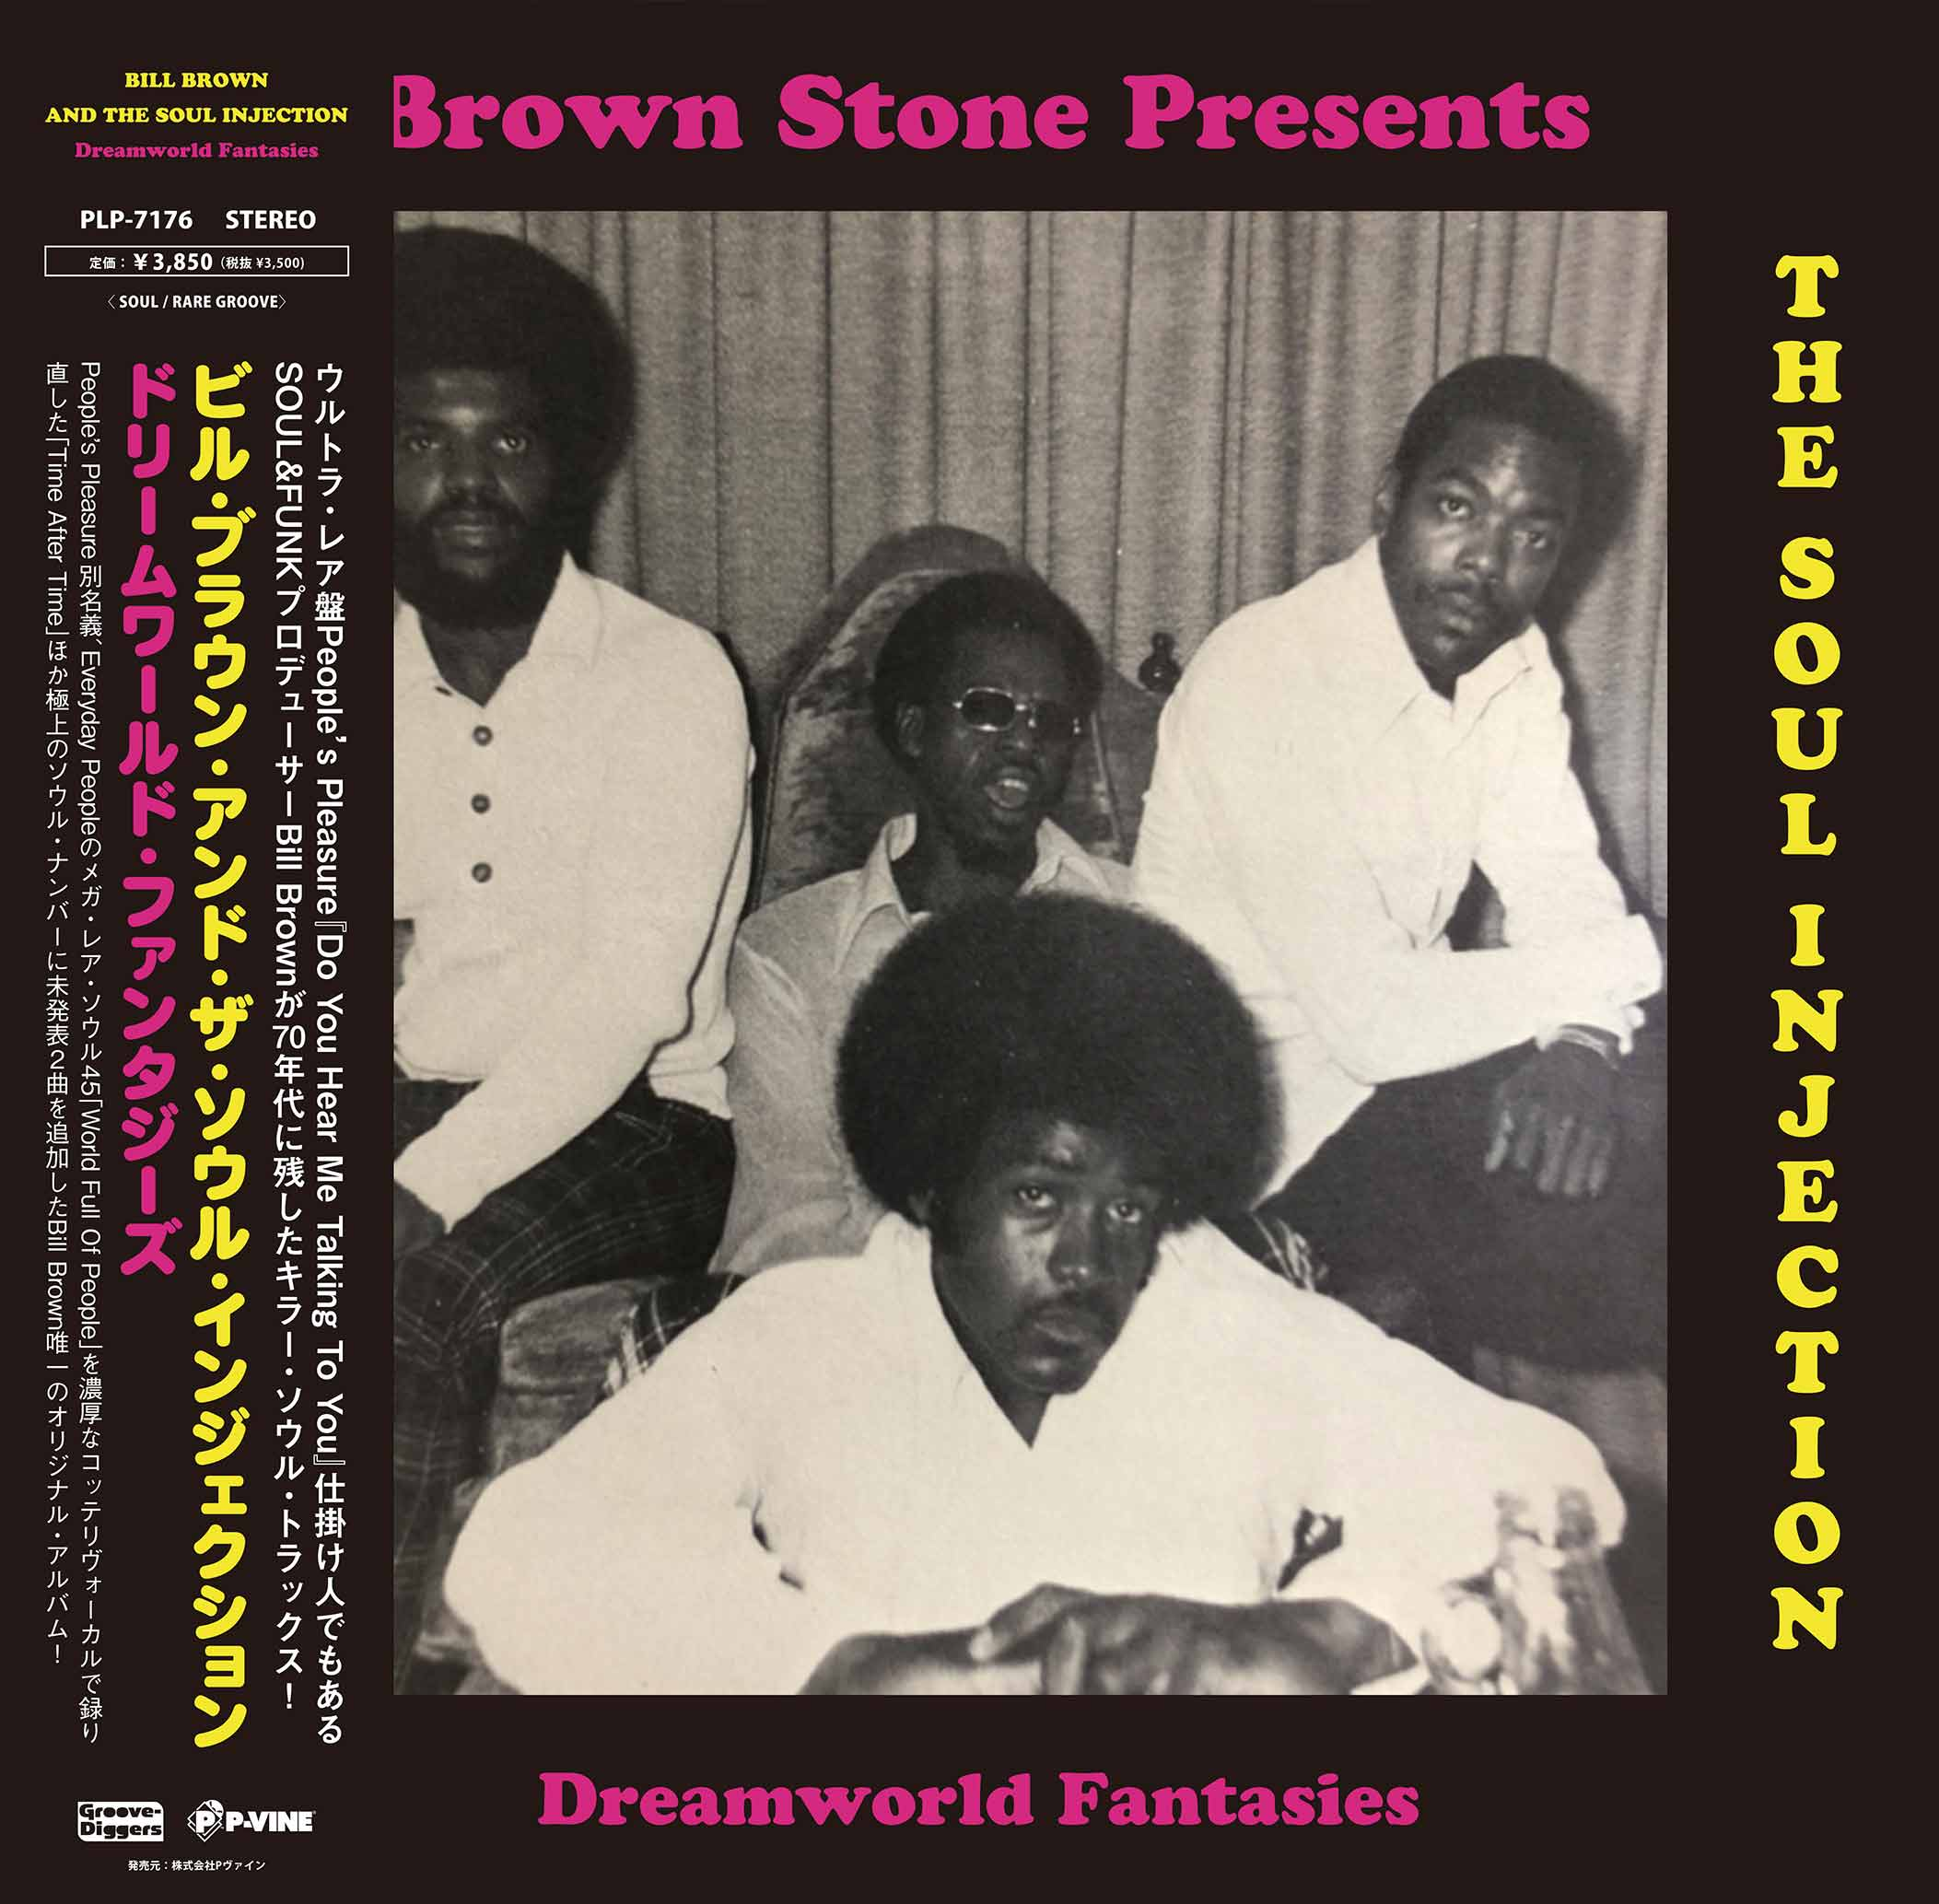 BILL BROWN AND THE SOUL INJECTION